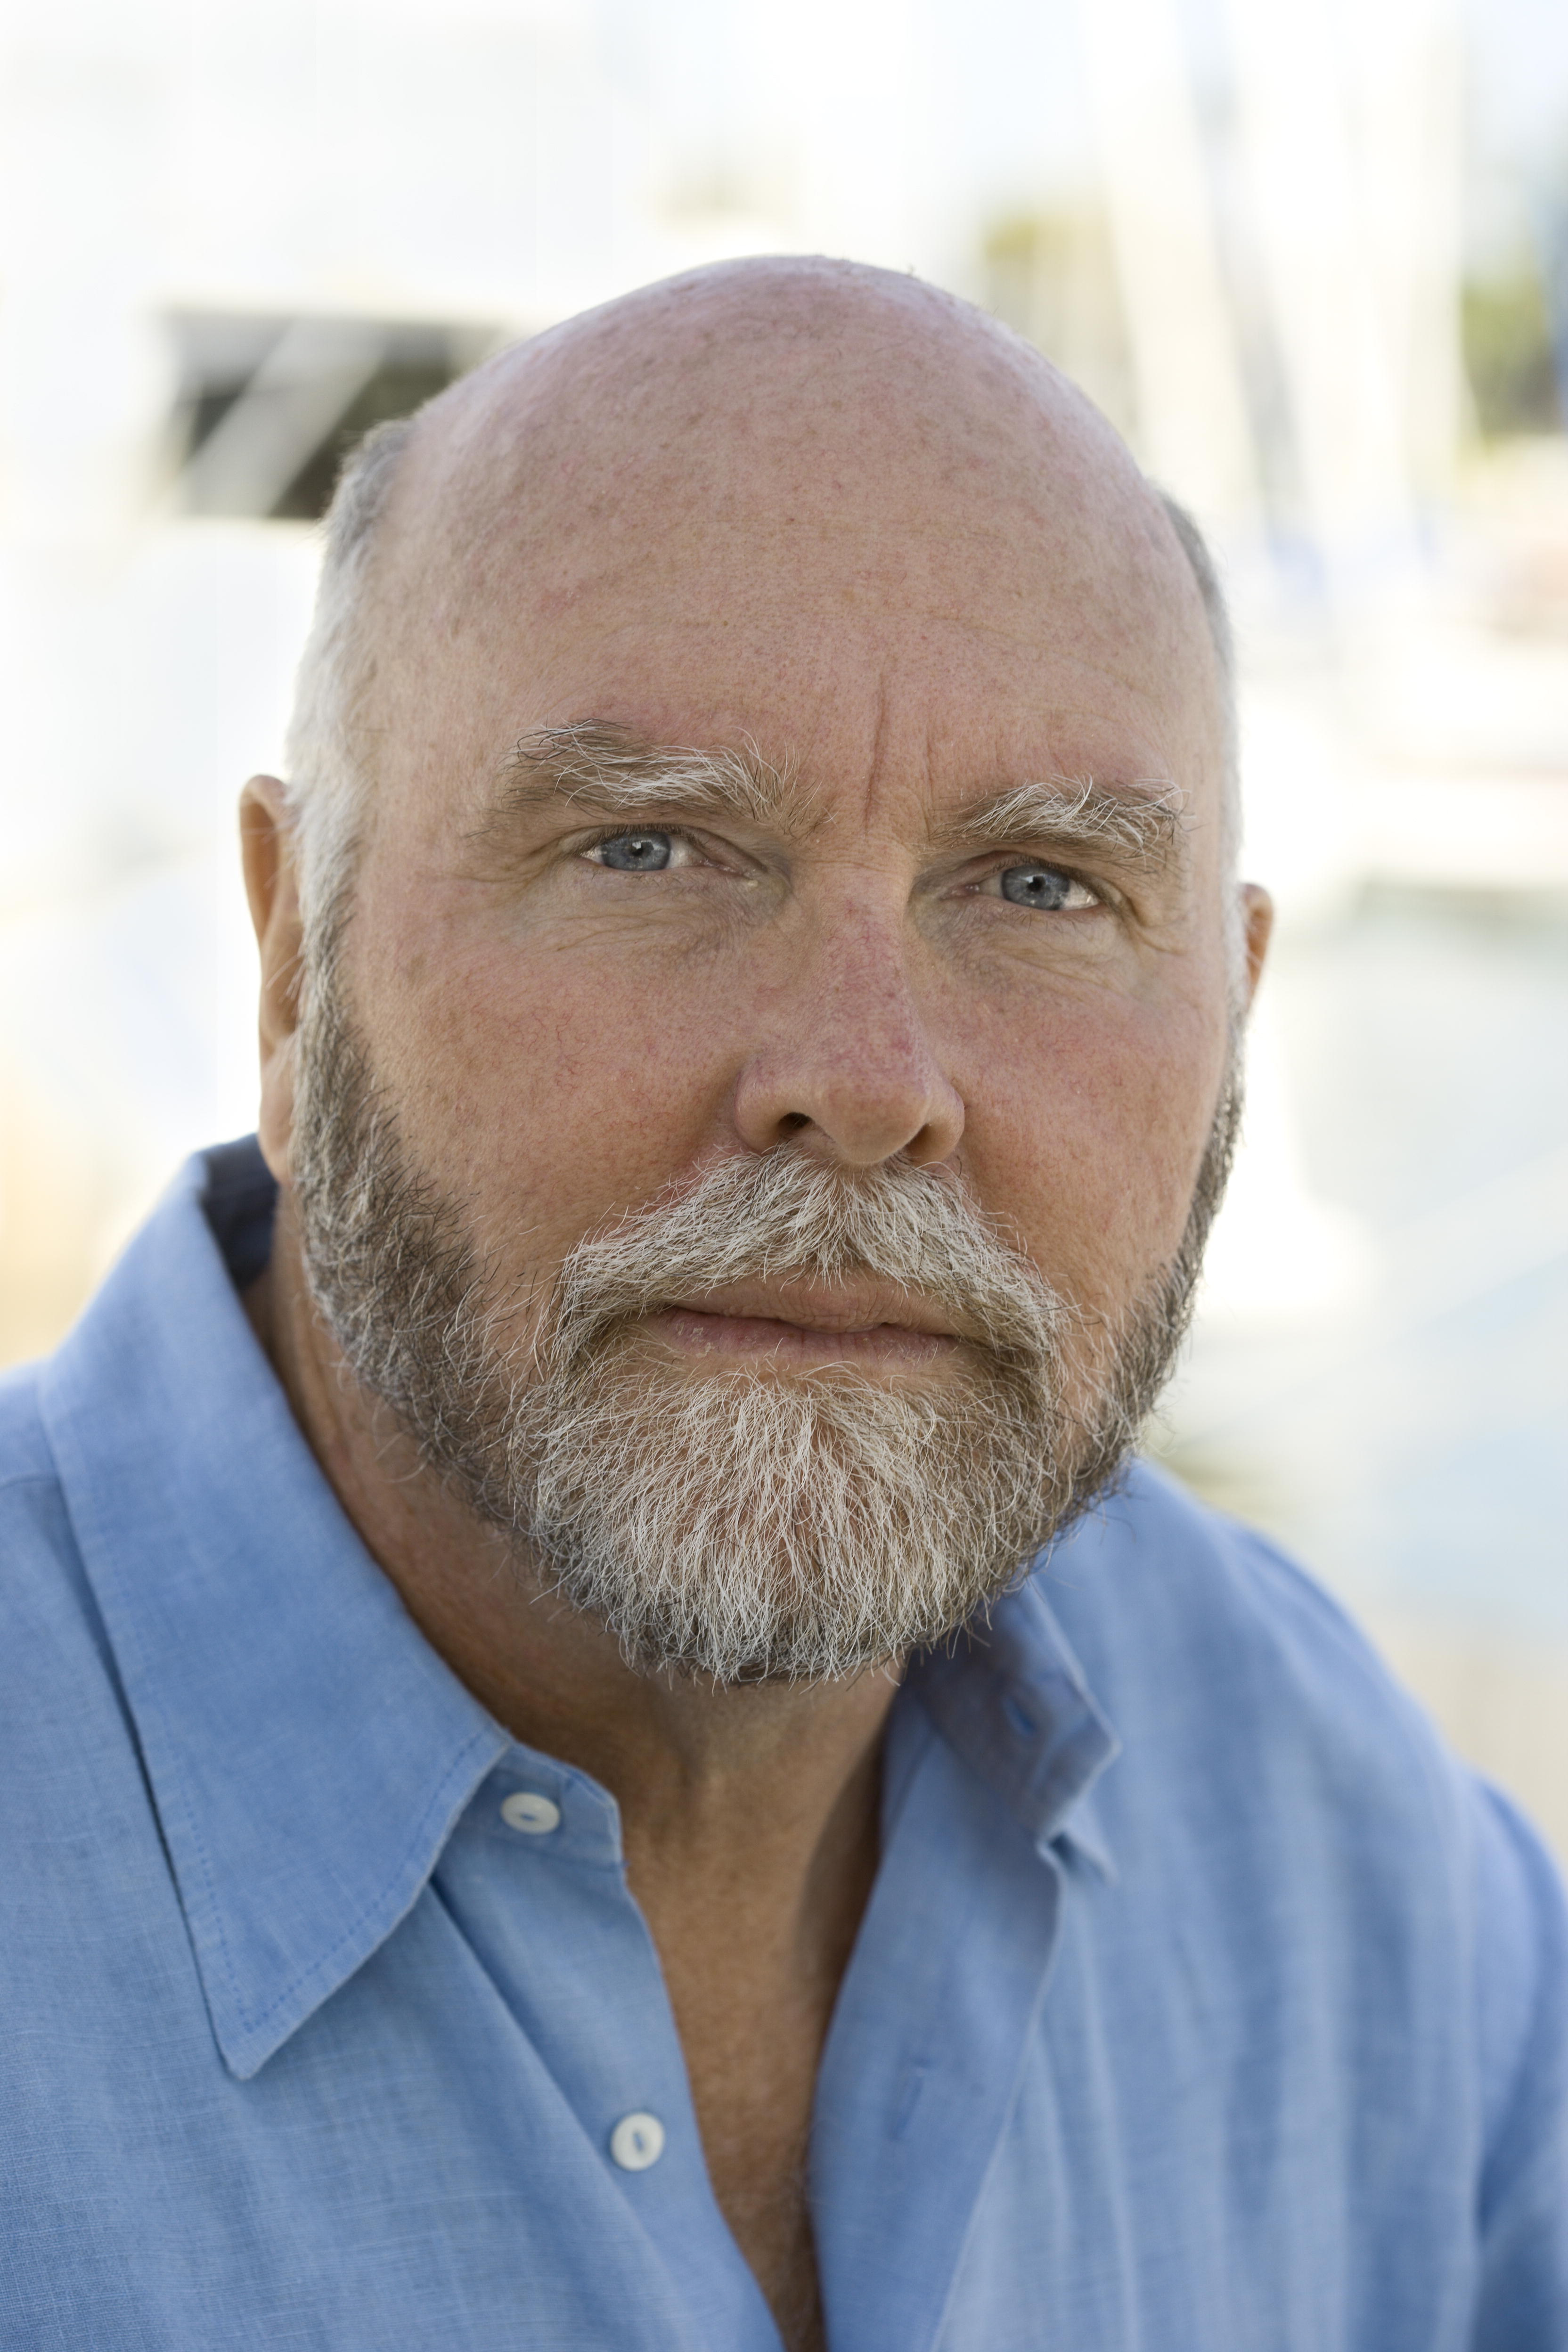 Craig Venter scientists whose lab created synthetic life form